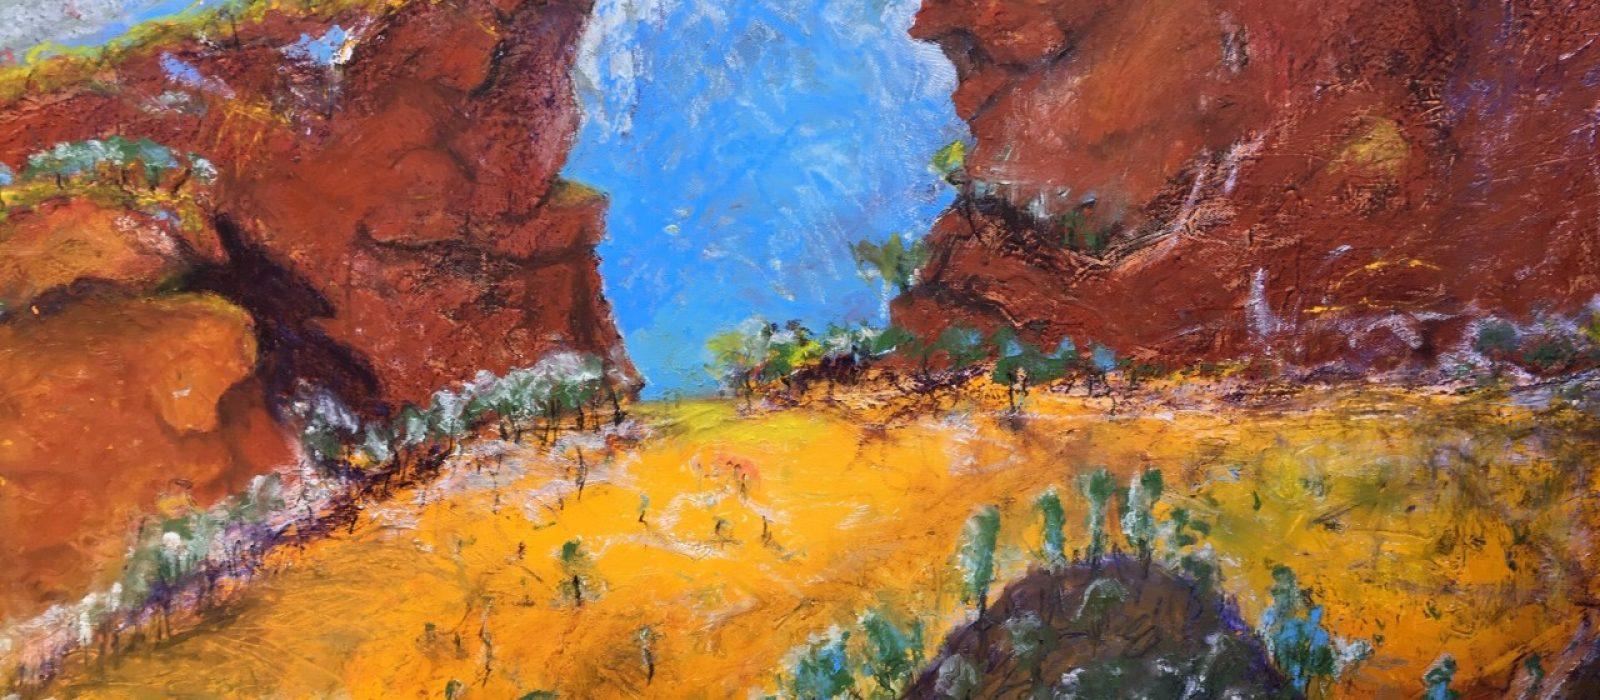 Rodney Moss, Pilbara Dreaming (detail). Photo: R. Moss